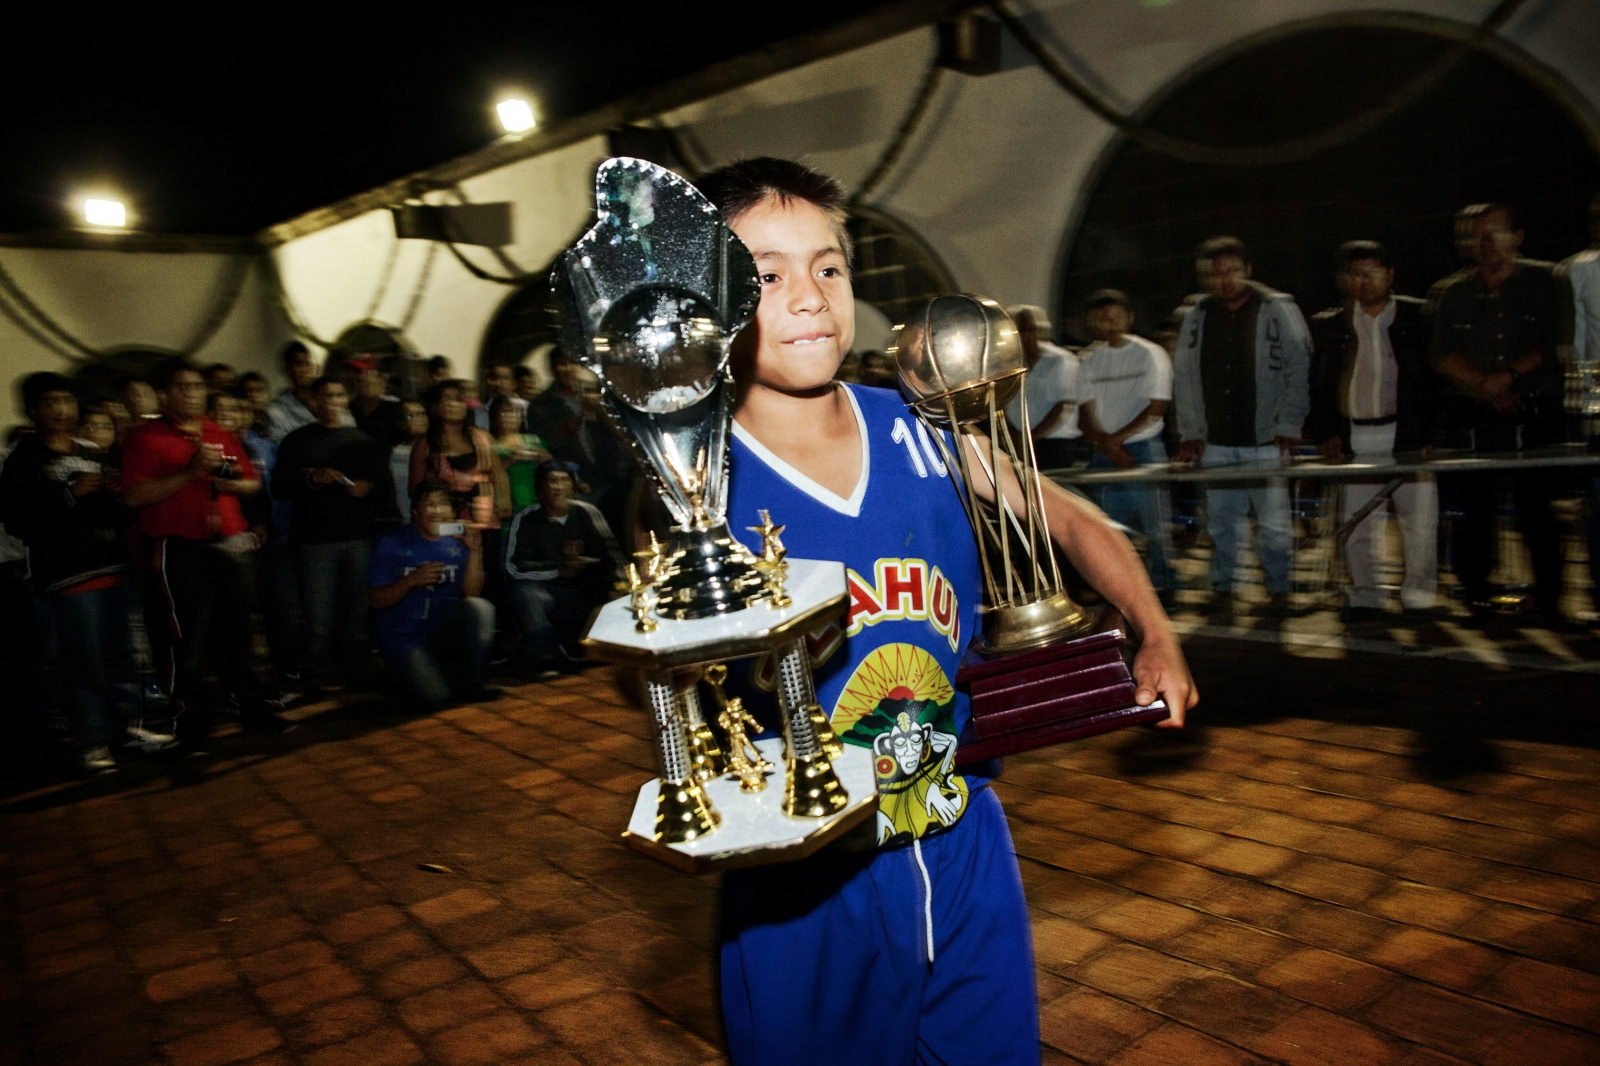 GUELATAO DE JUÁREZ, MARCH 21, 2012. Marco Pacheco, from Santa Maria Tlahuitoltepec, wins the most valuable player award (Vicente Montes trophy) during the Copa Benito Juarez 2012.